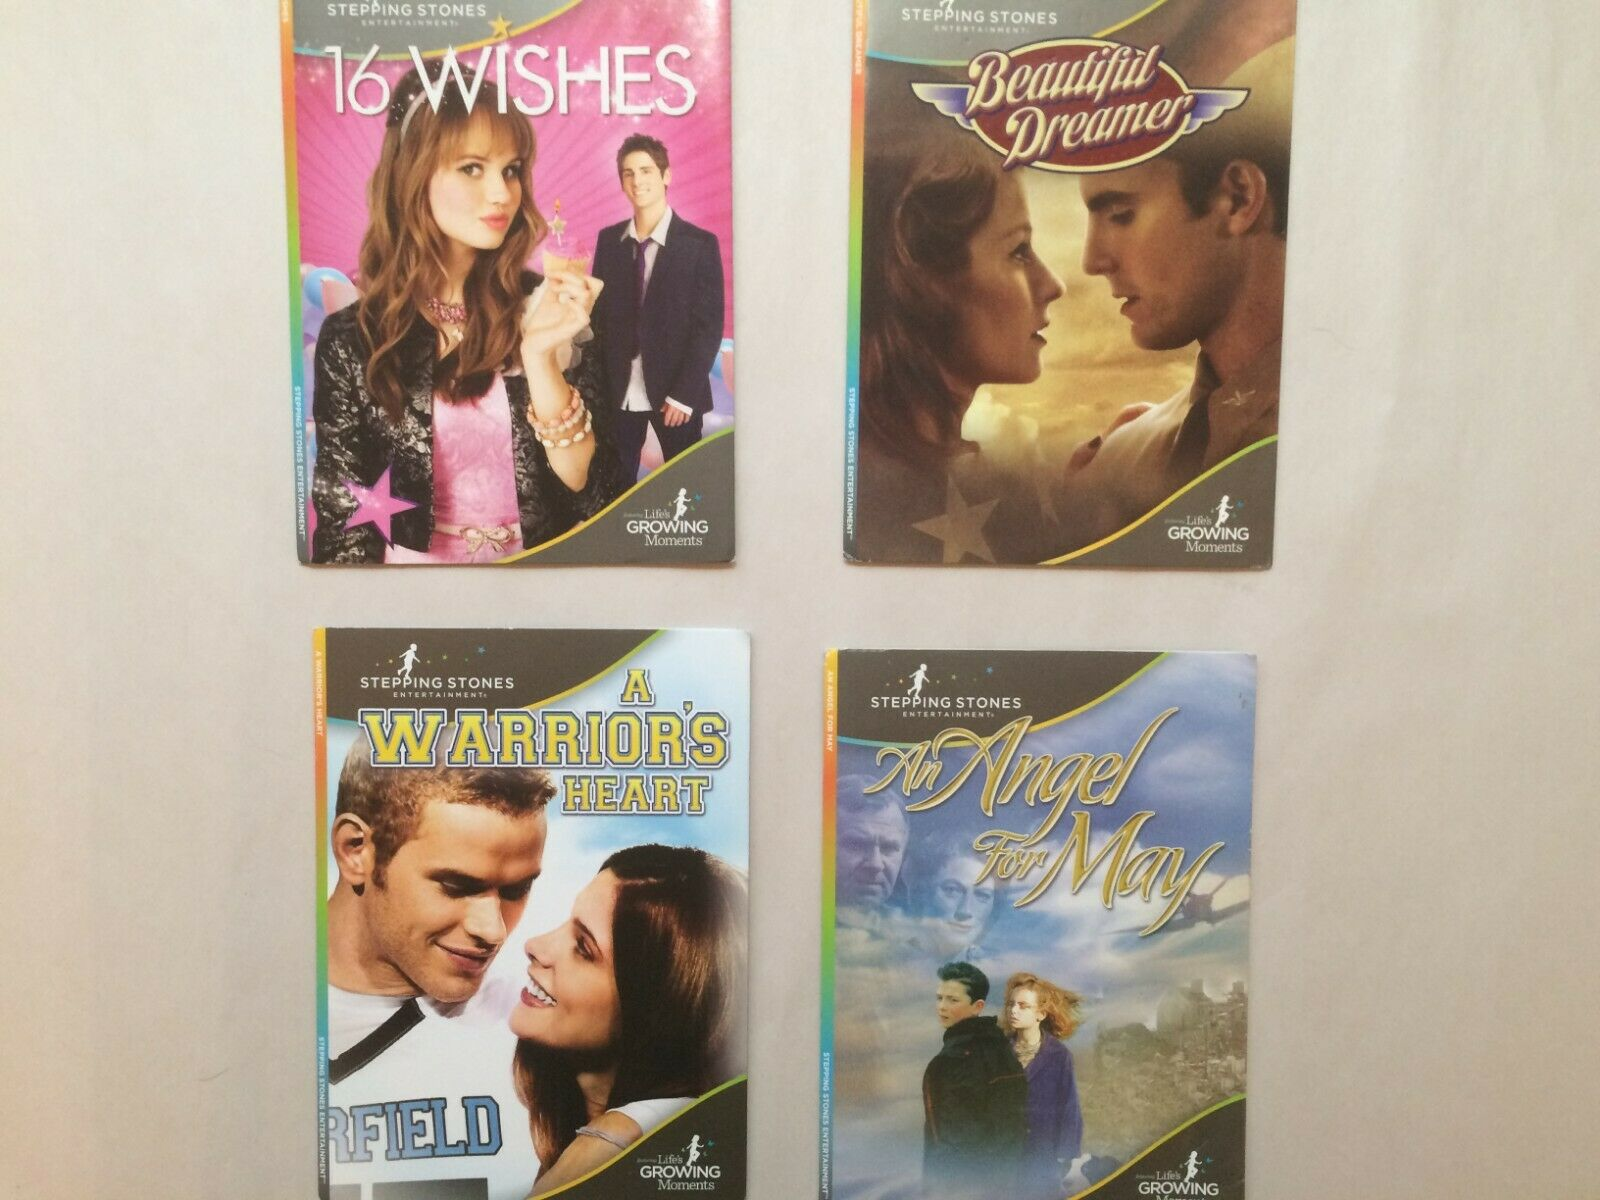 DVD Stepping Stones Entertainment lot of 4, BEAUTIFUL DREAME